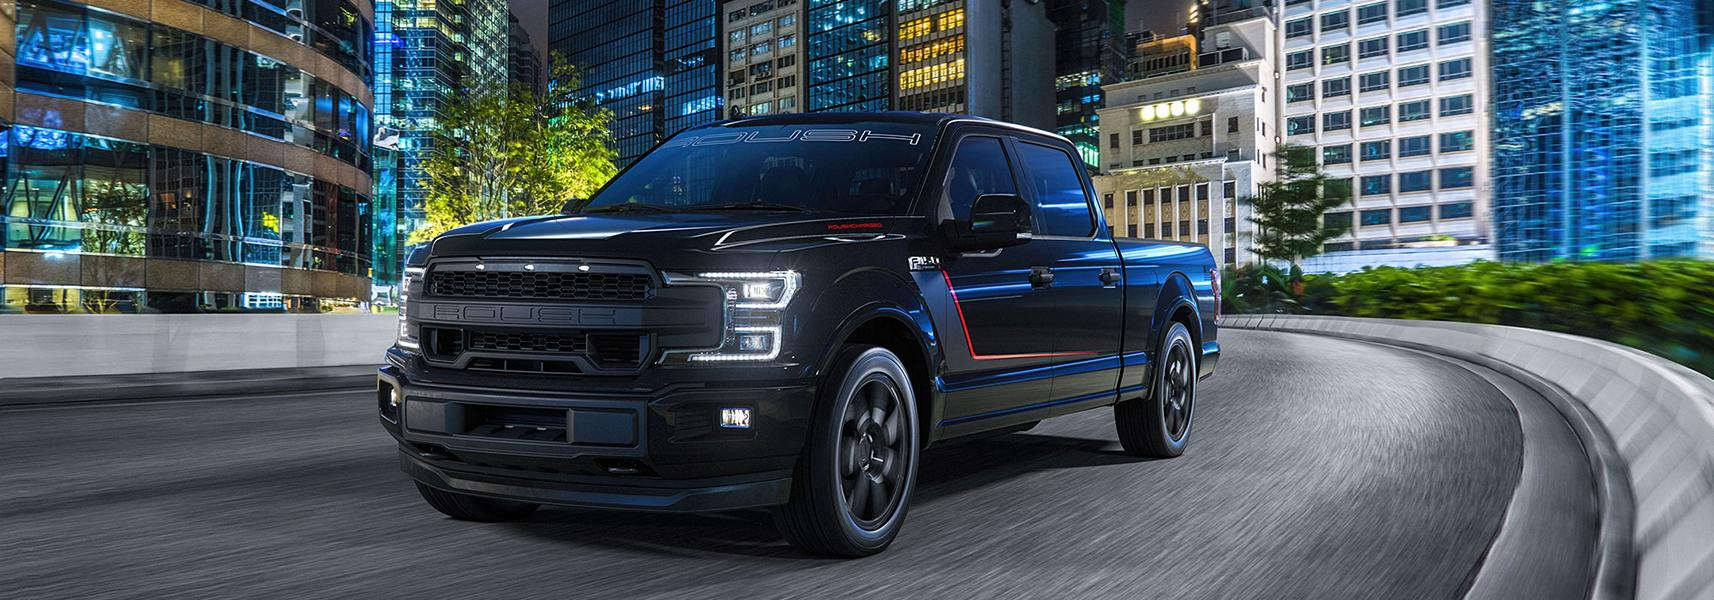 Roush F 150 NITEMARE Ford Tuning Stark: 2018 Roush Performance Ford F 150 SC Nitemare mit 650 PS